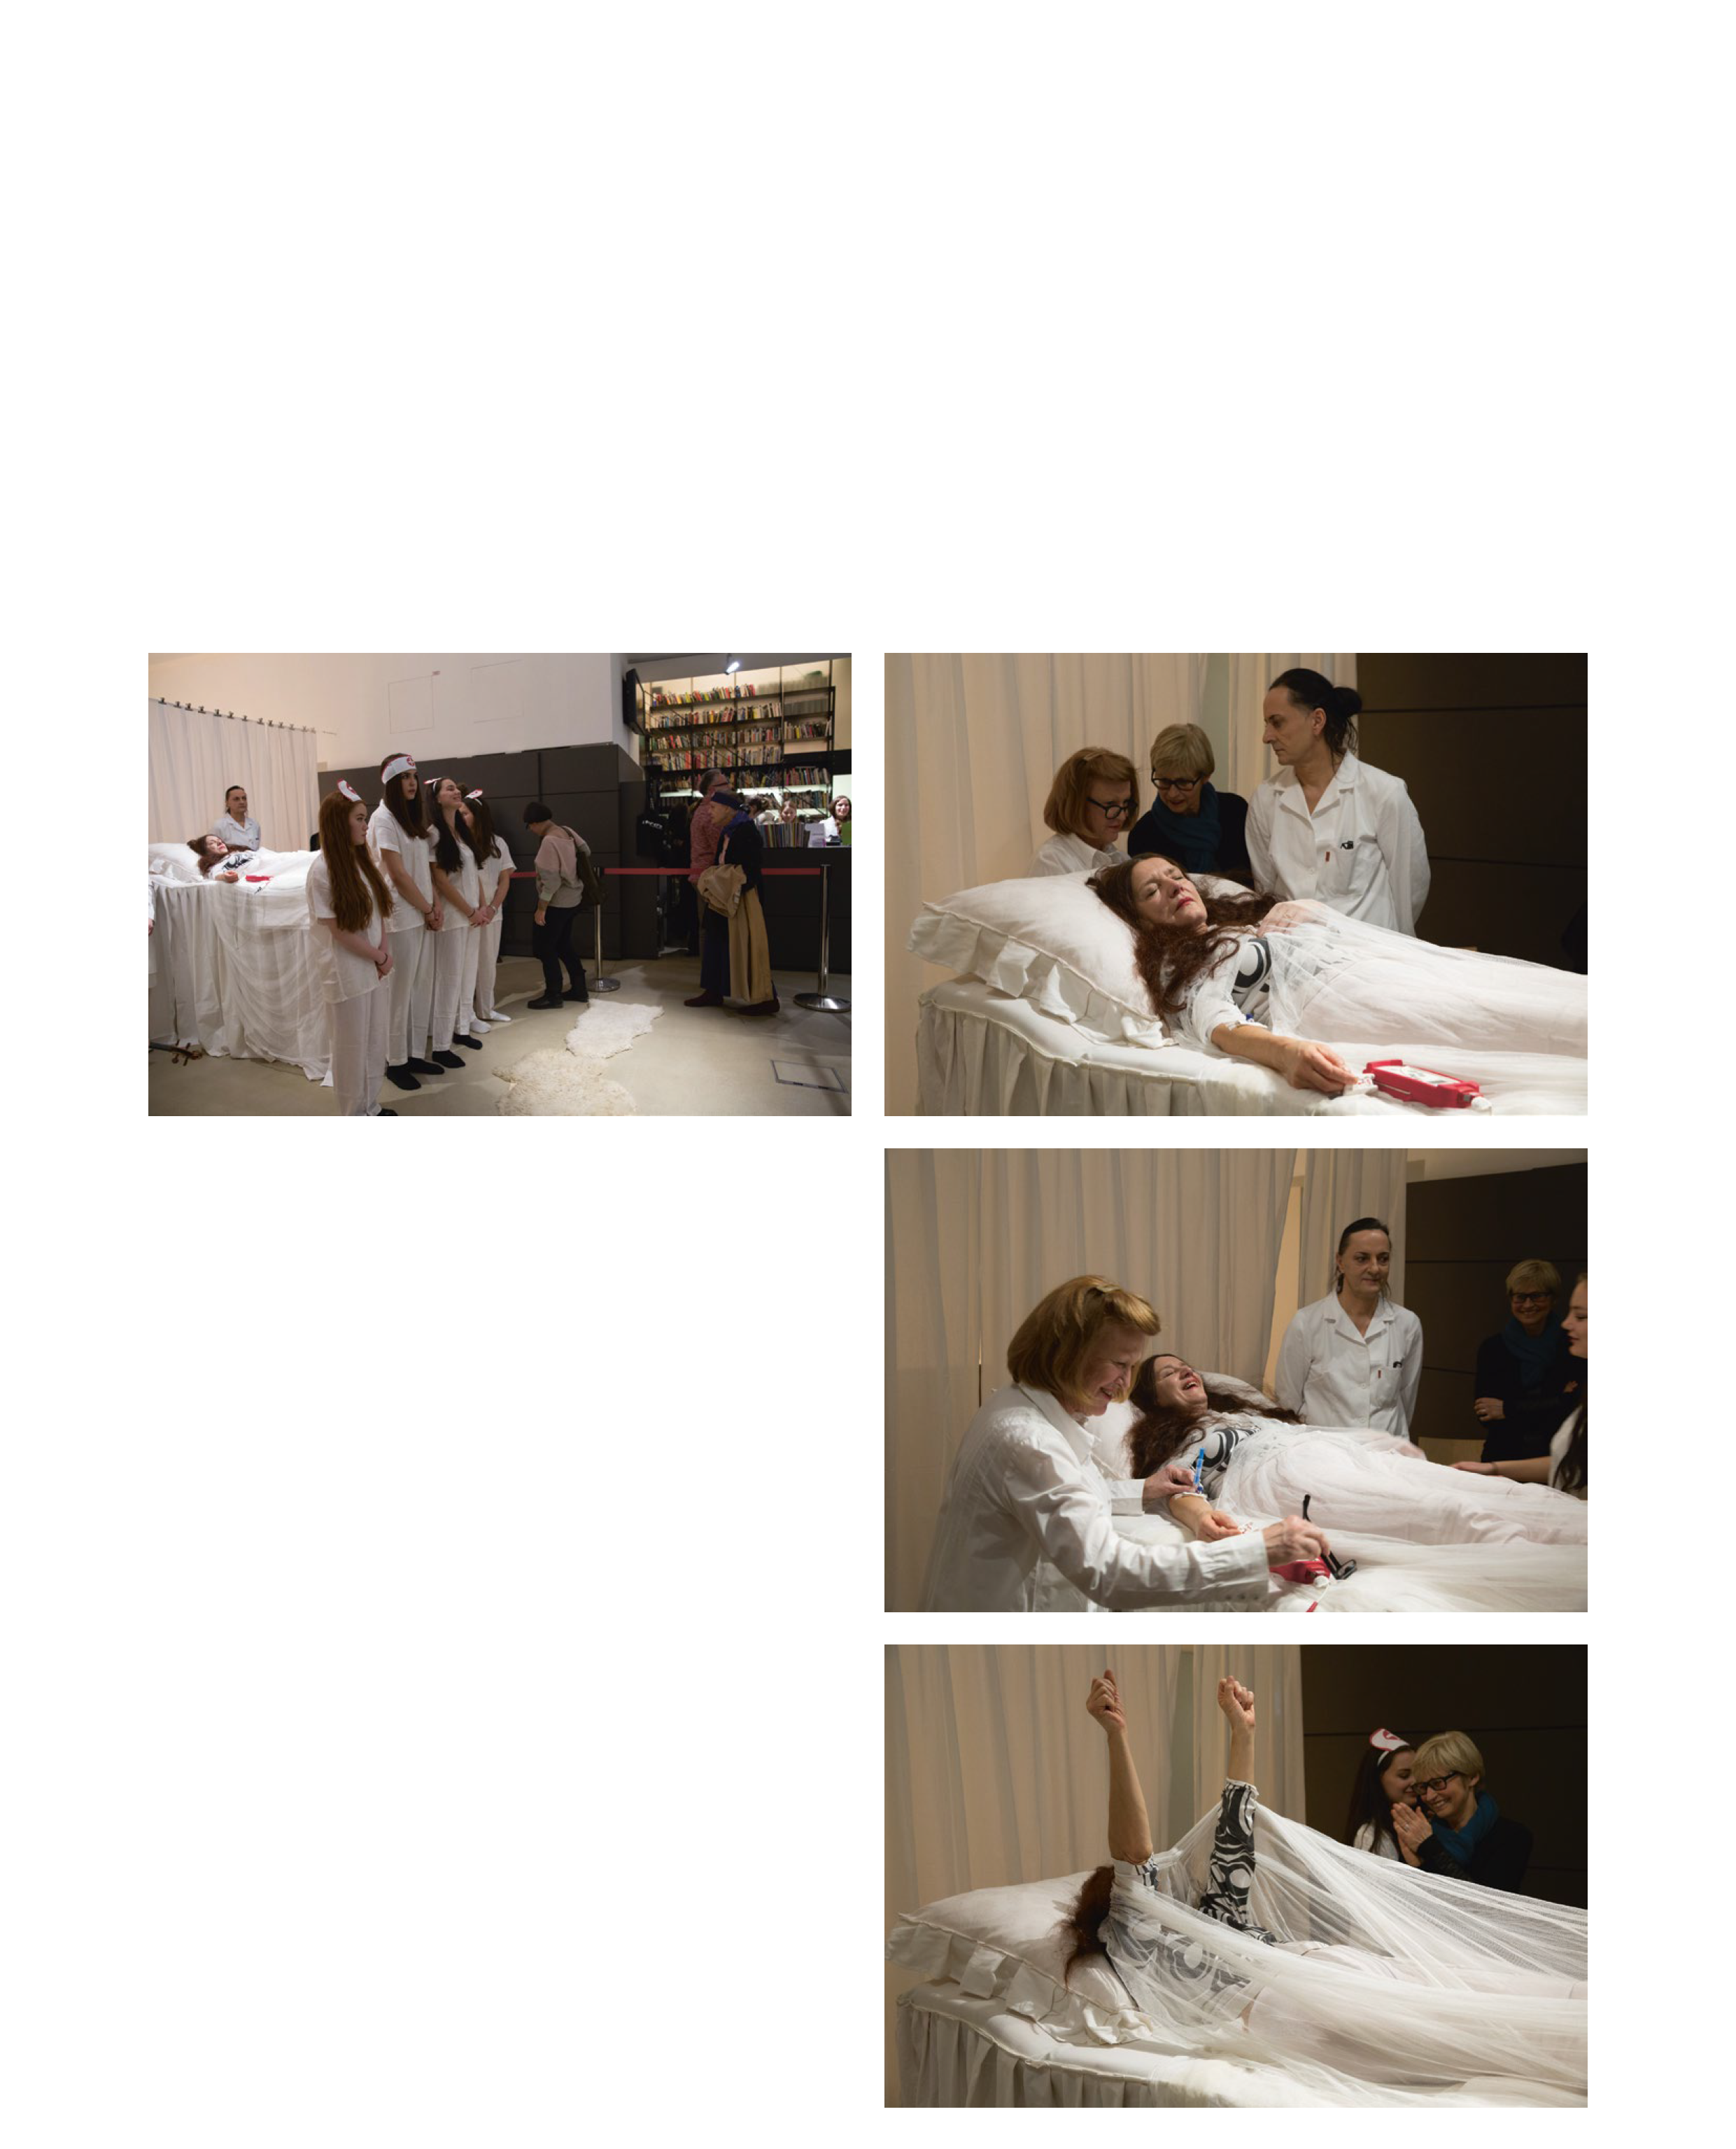 Zeitkunst_Samsonow_The Curator, the Anesthetist, the Artist & her Absence_The Artist as Medic. Elisabeth von Samsonow's Performance The Symptom and the Cure_Stuckey_Seite_21.png